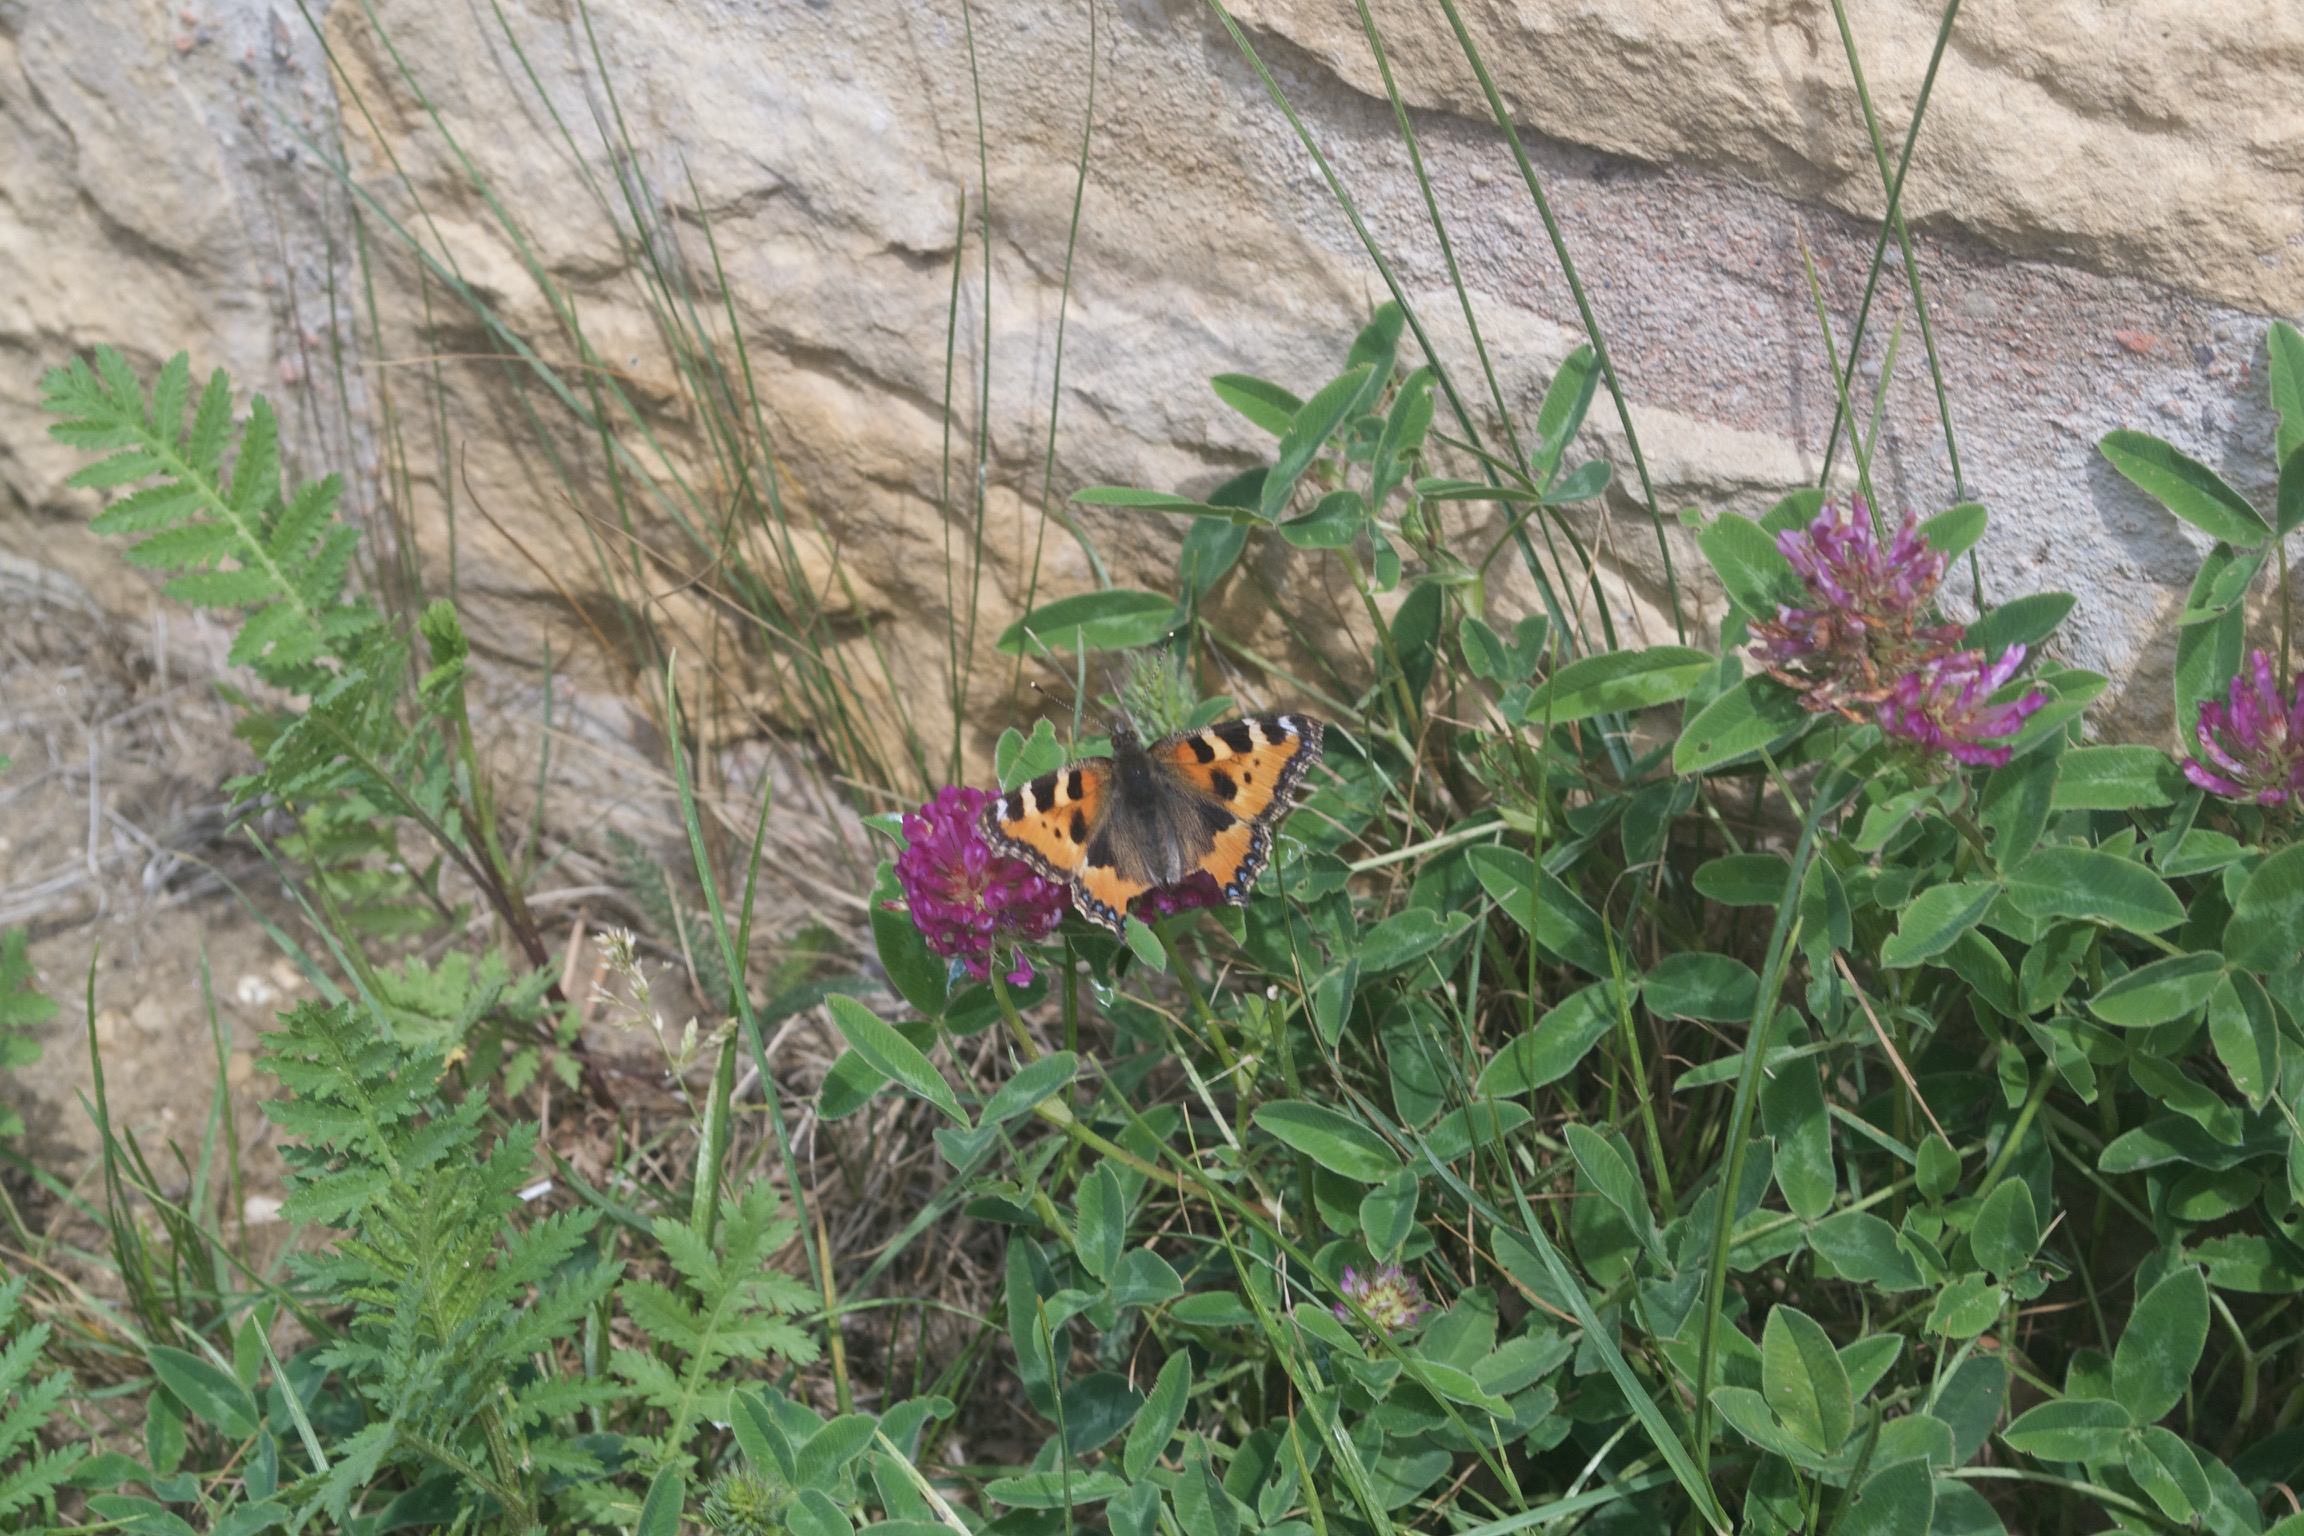 An orange butterfly sits on a purple flower.